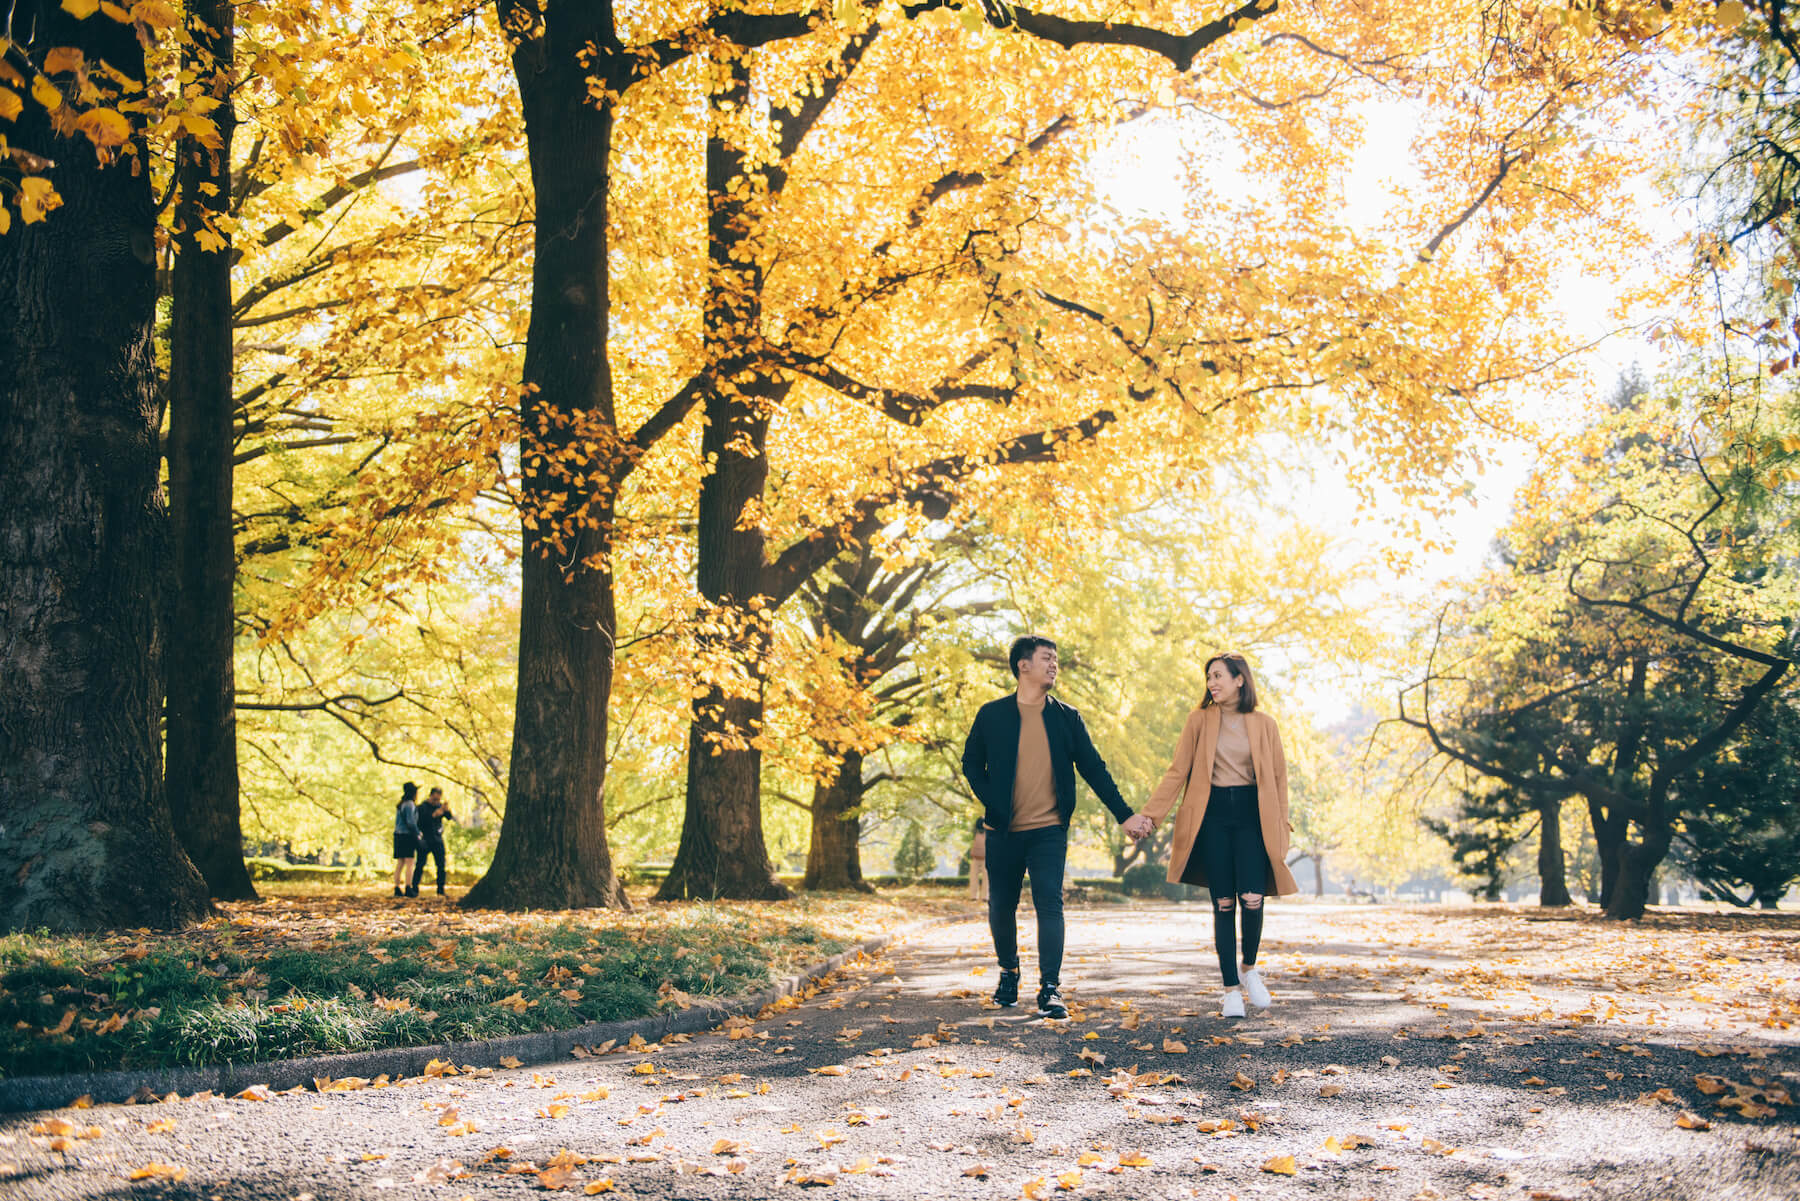 How to Have the Best Fall Photoshoot